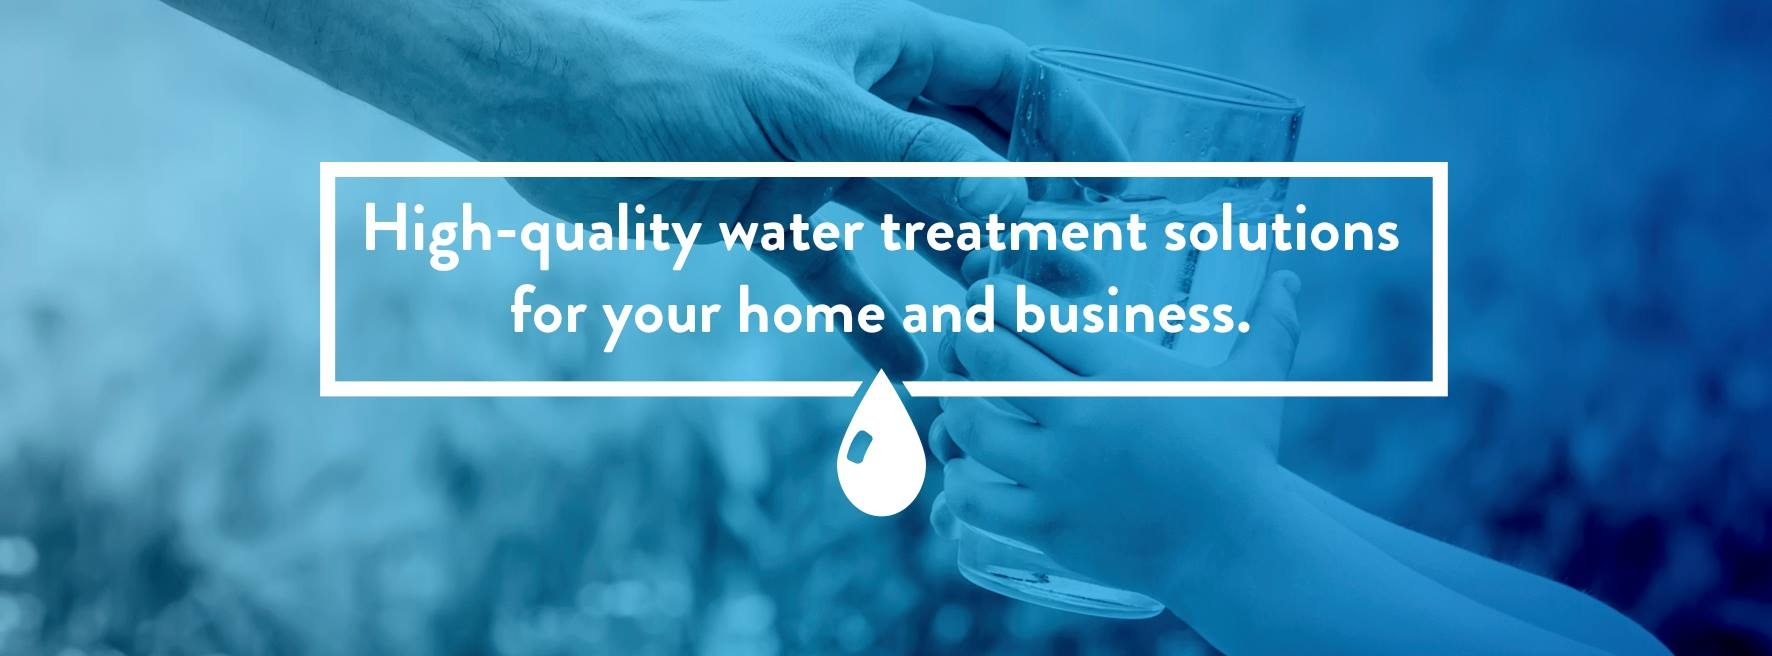 Softener Water System (@advancedwaterinc) Cover Image